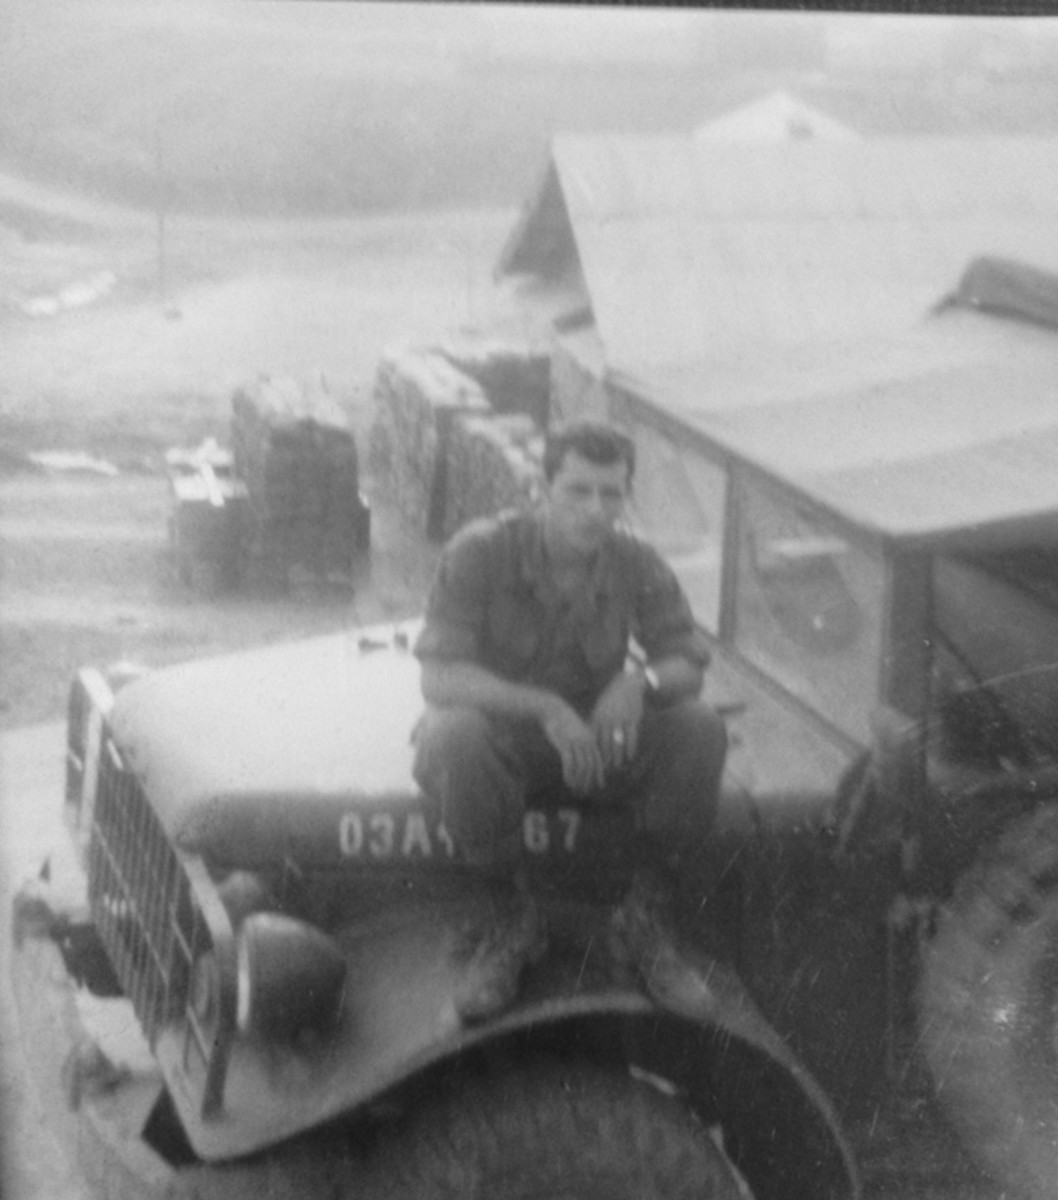 Tommy was then made into the Courier Driver for the Battalion. He drove a mid-sixties Dodge M37B1 for this new job — a daily run from Firebase Nancy to 45th Engineer Group Headquarters in Phu Bai.